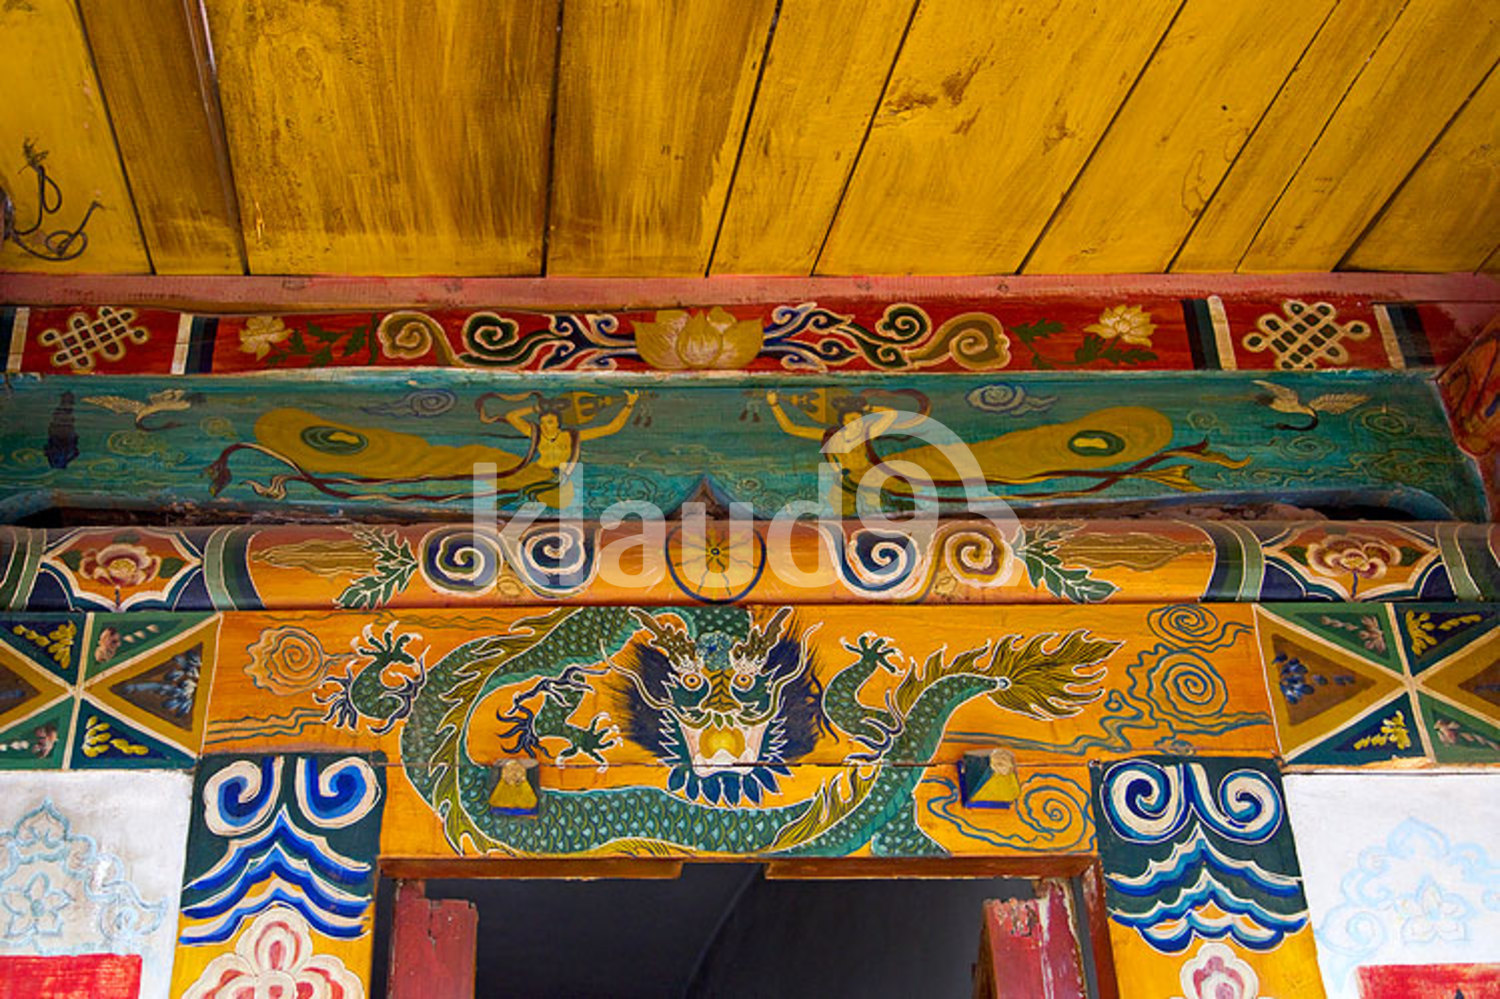 Ancient Chinese doorframe with dragon pattern